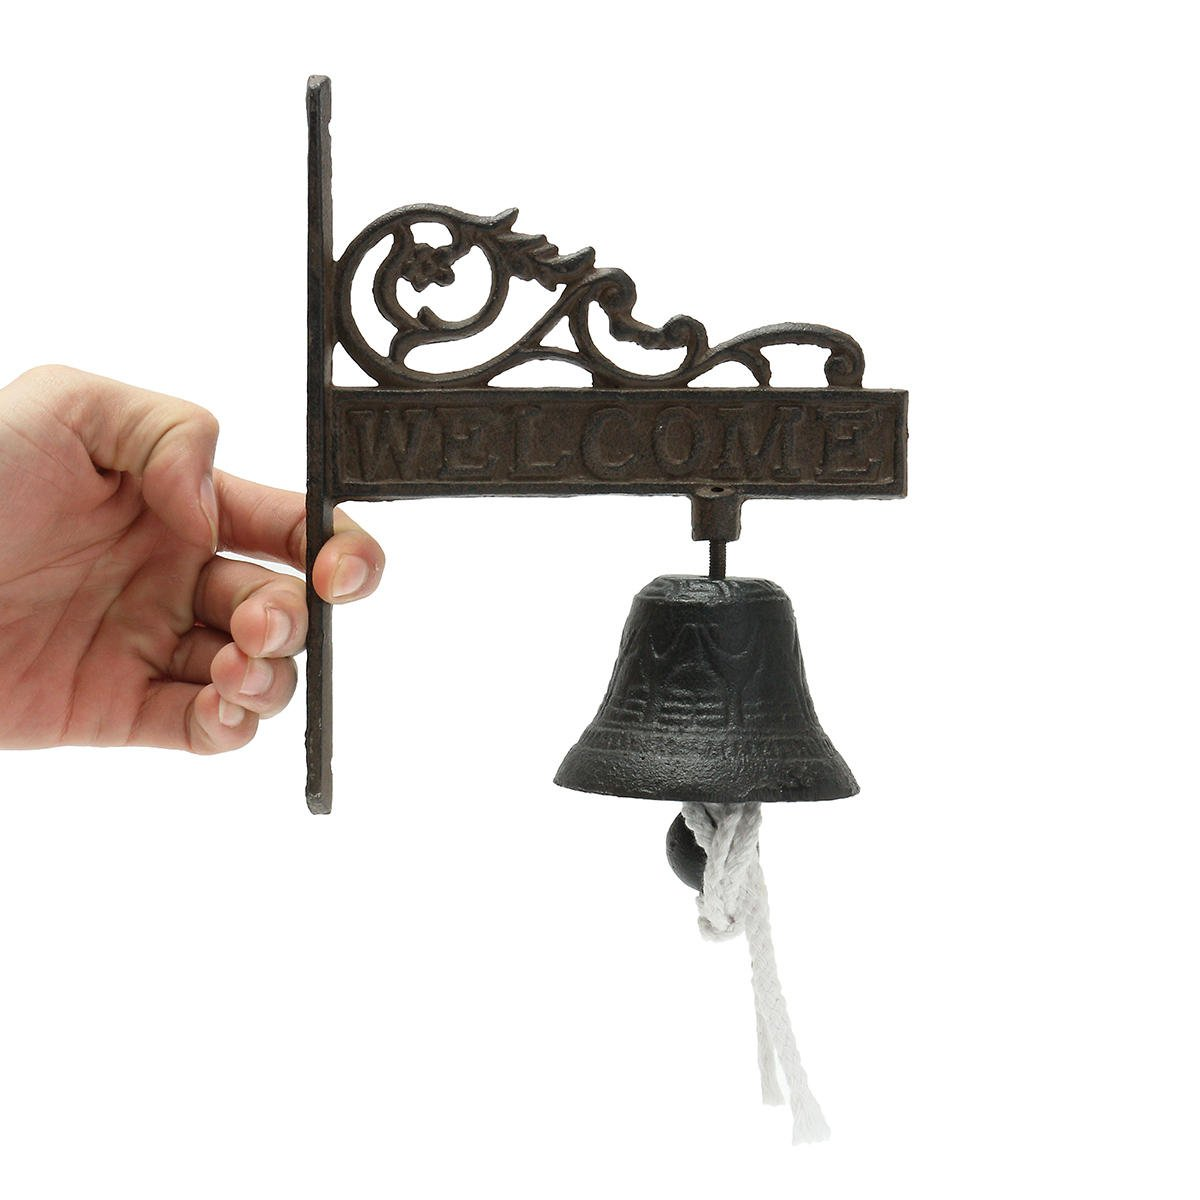 Chains Doorway Chime - Vintage Rustic Solid Metal Cast Iron Hanging Wall Mounted Home Doorbell - Cast-Iron Alexander Graham Branding Campana Gong Threshold Smoothing Access Buzzer - 1PCs